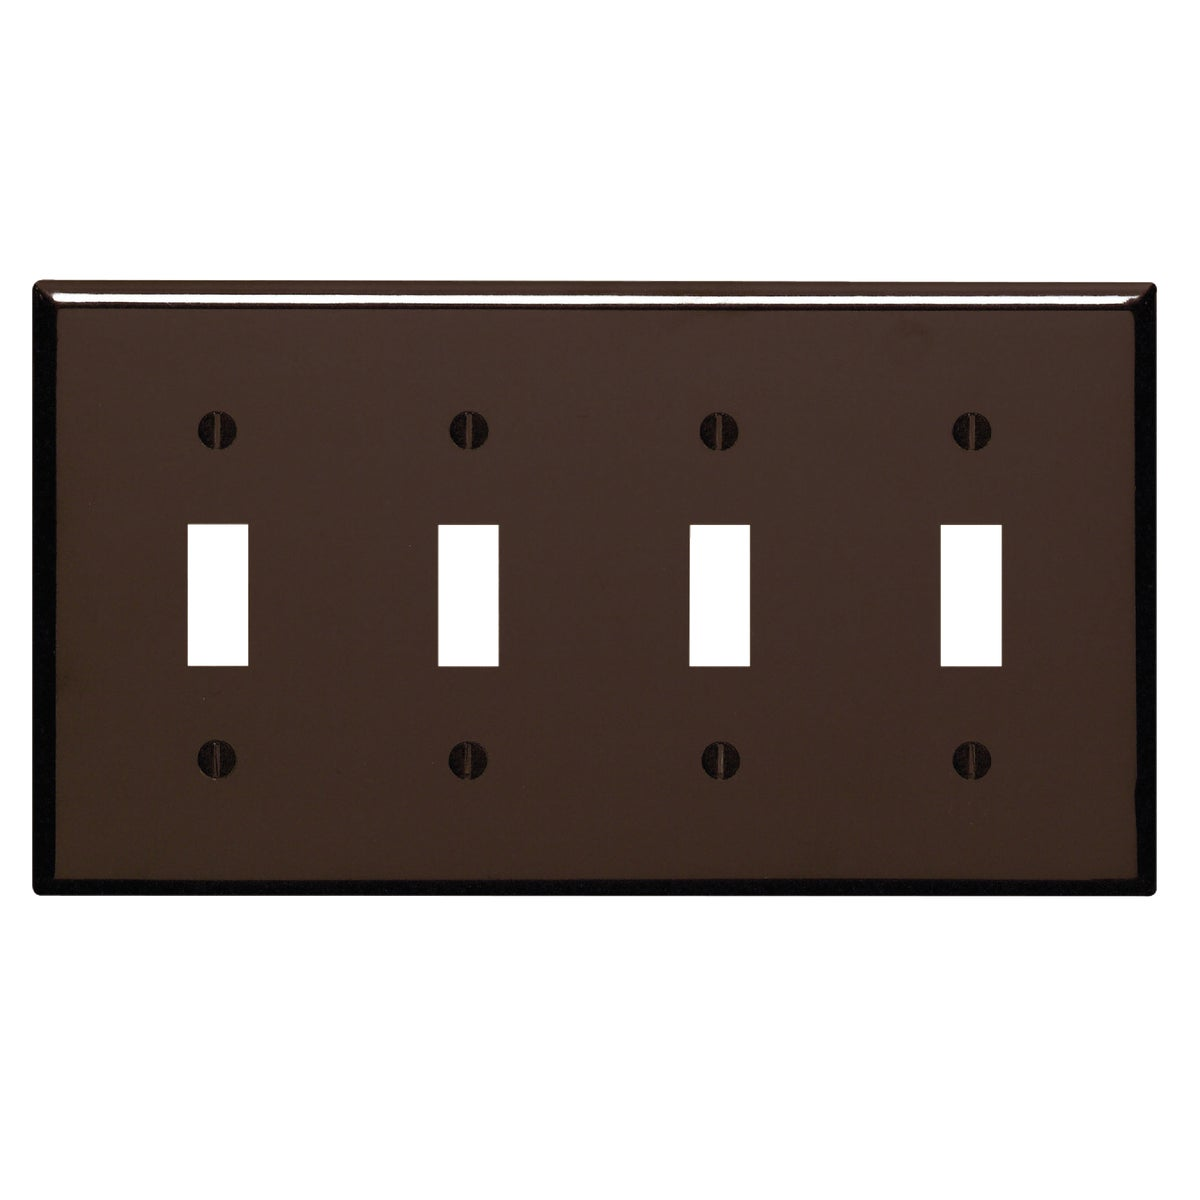 BRN 4-TOGGLE WALL PLATE - 85012 by Leviton Mfg Co